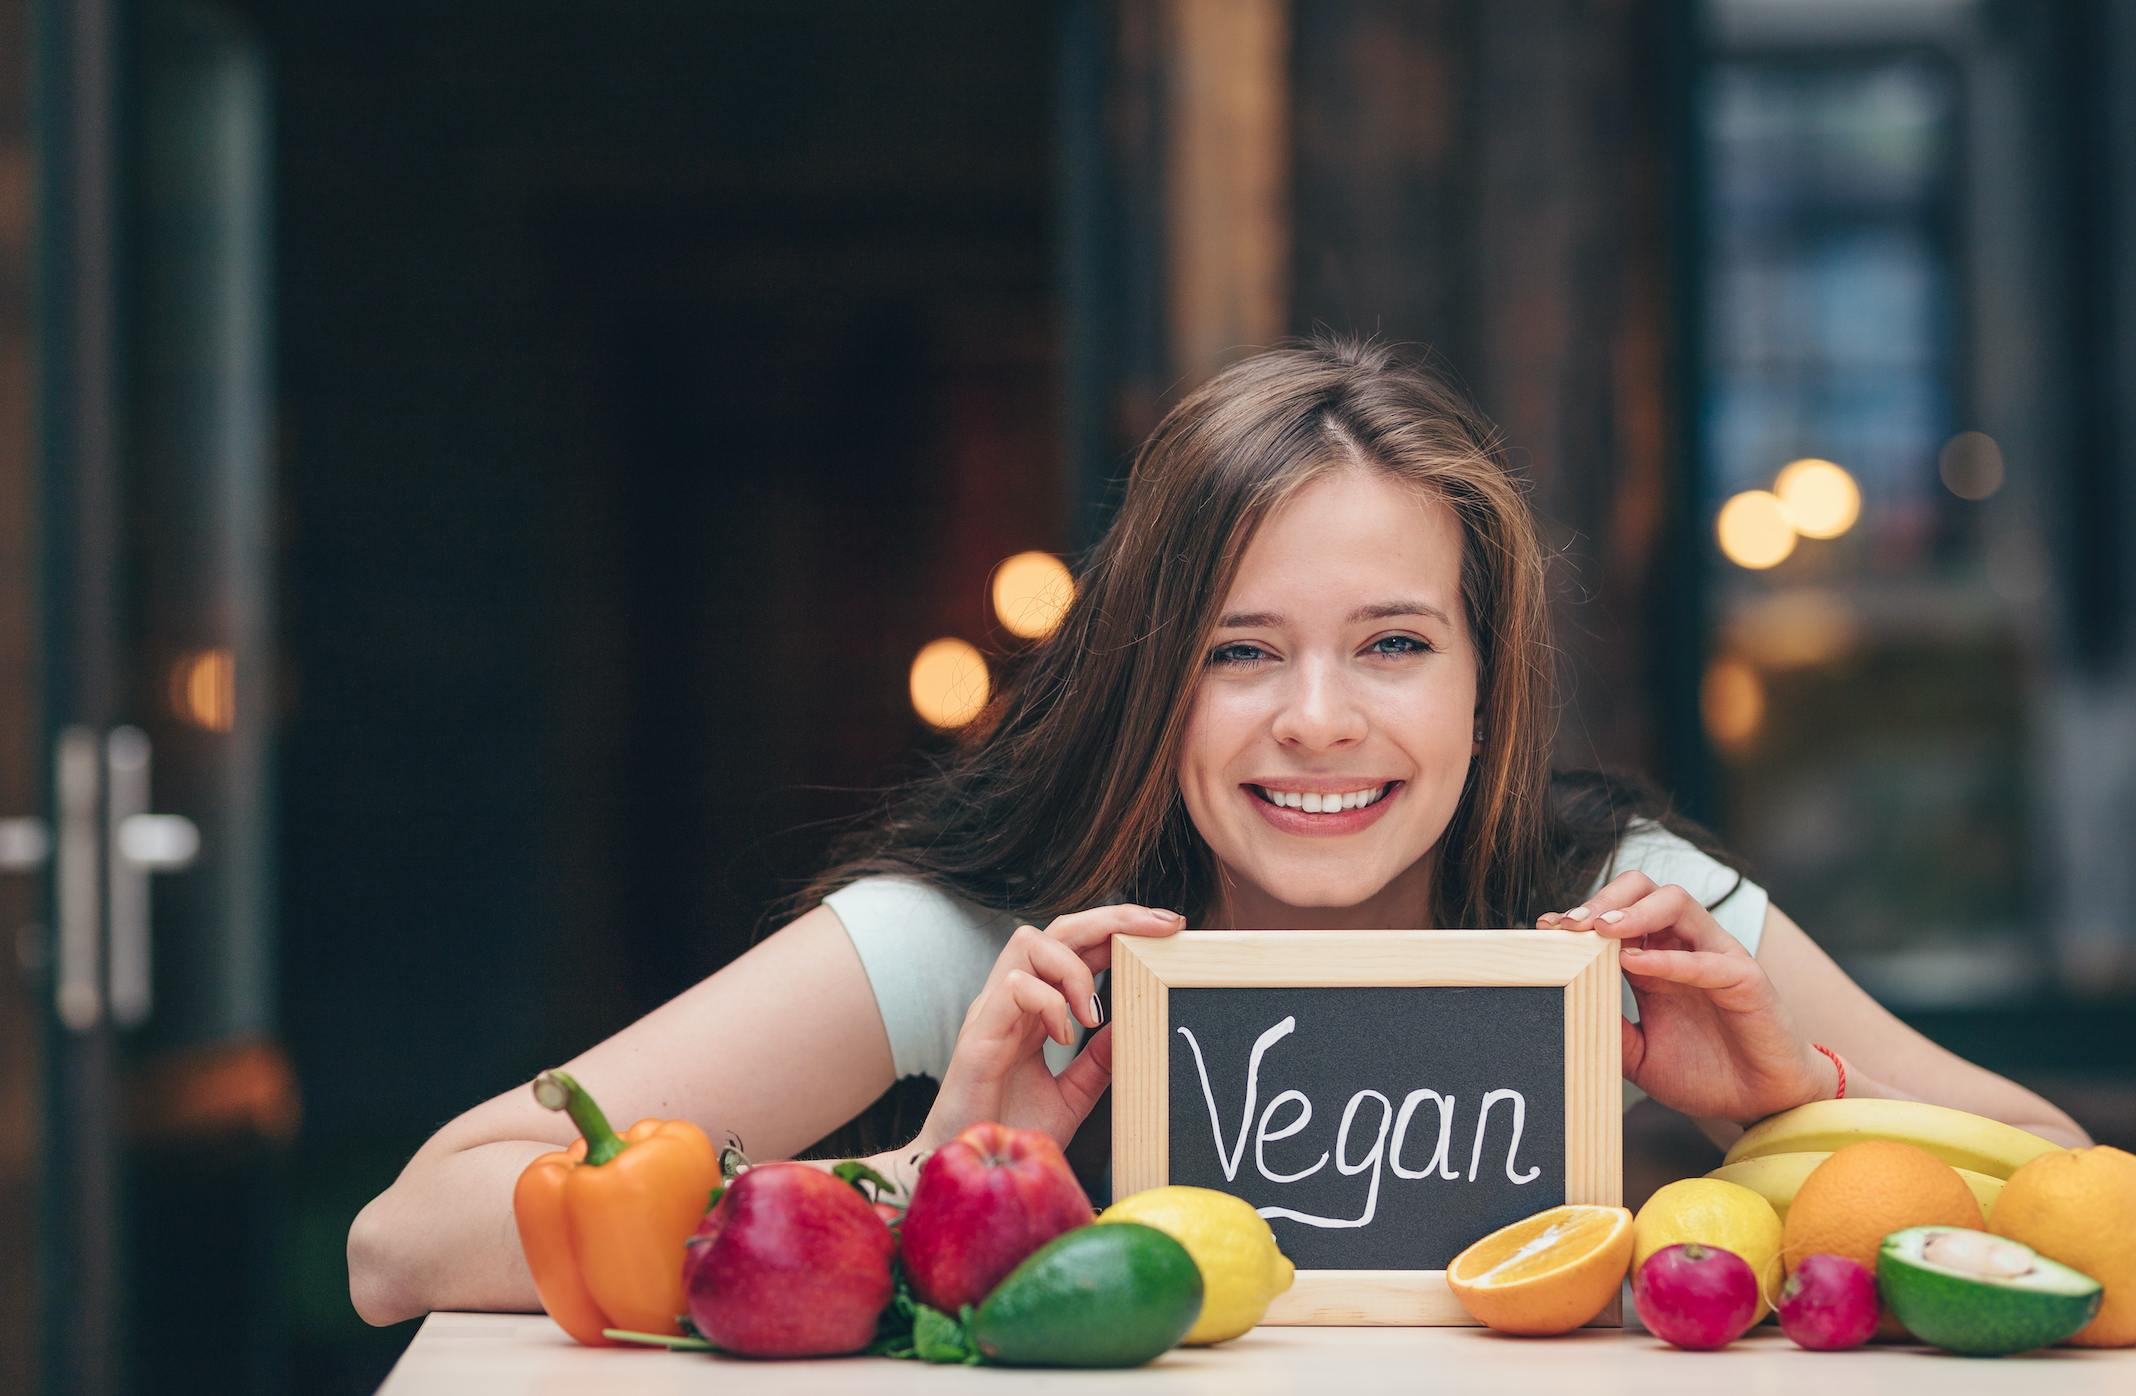 Vegan woman sits next to vegetables